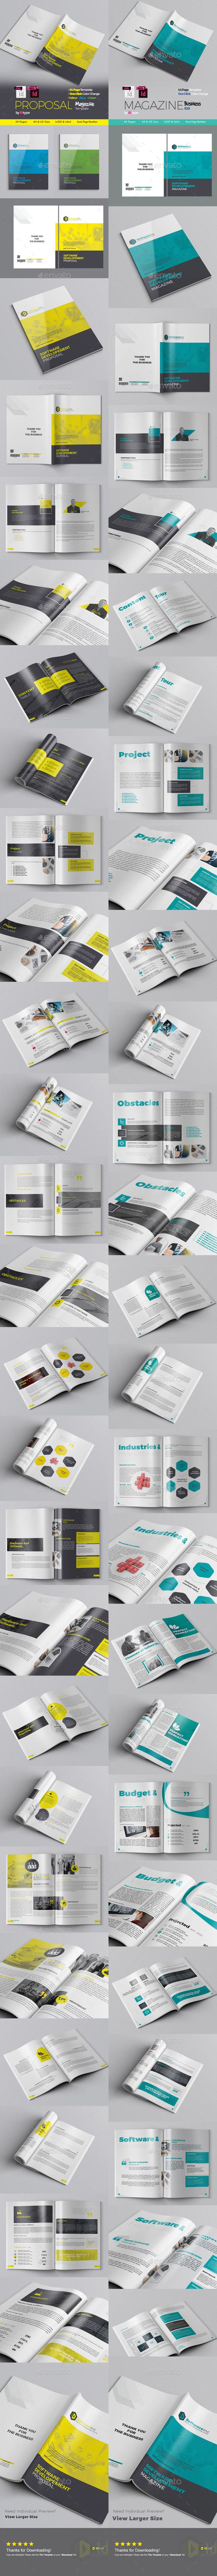 Software Company Magazine Template InDesign INDD - 24 & 44 Pages in ...